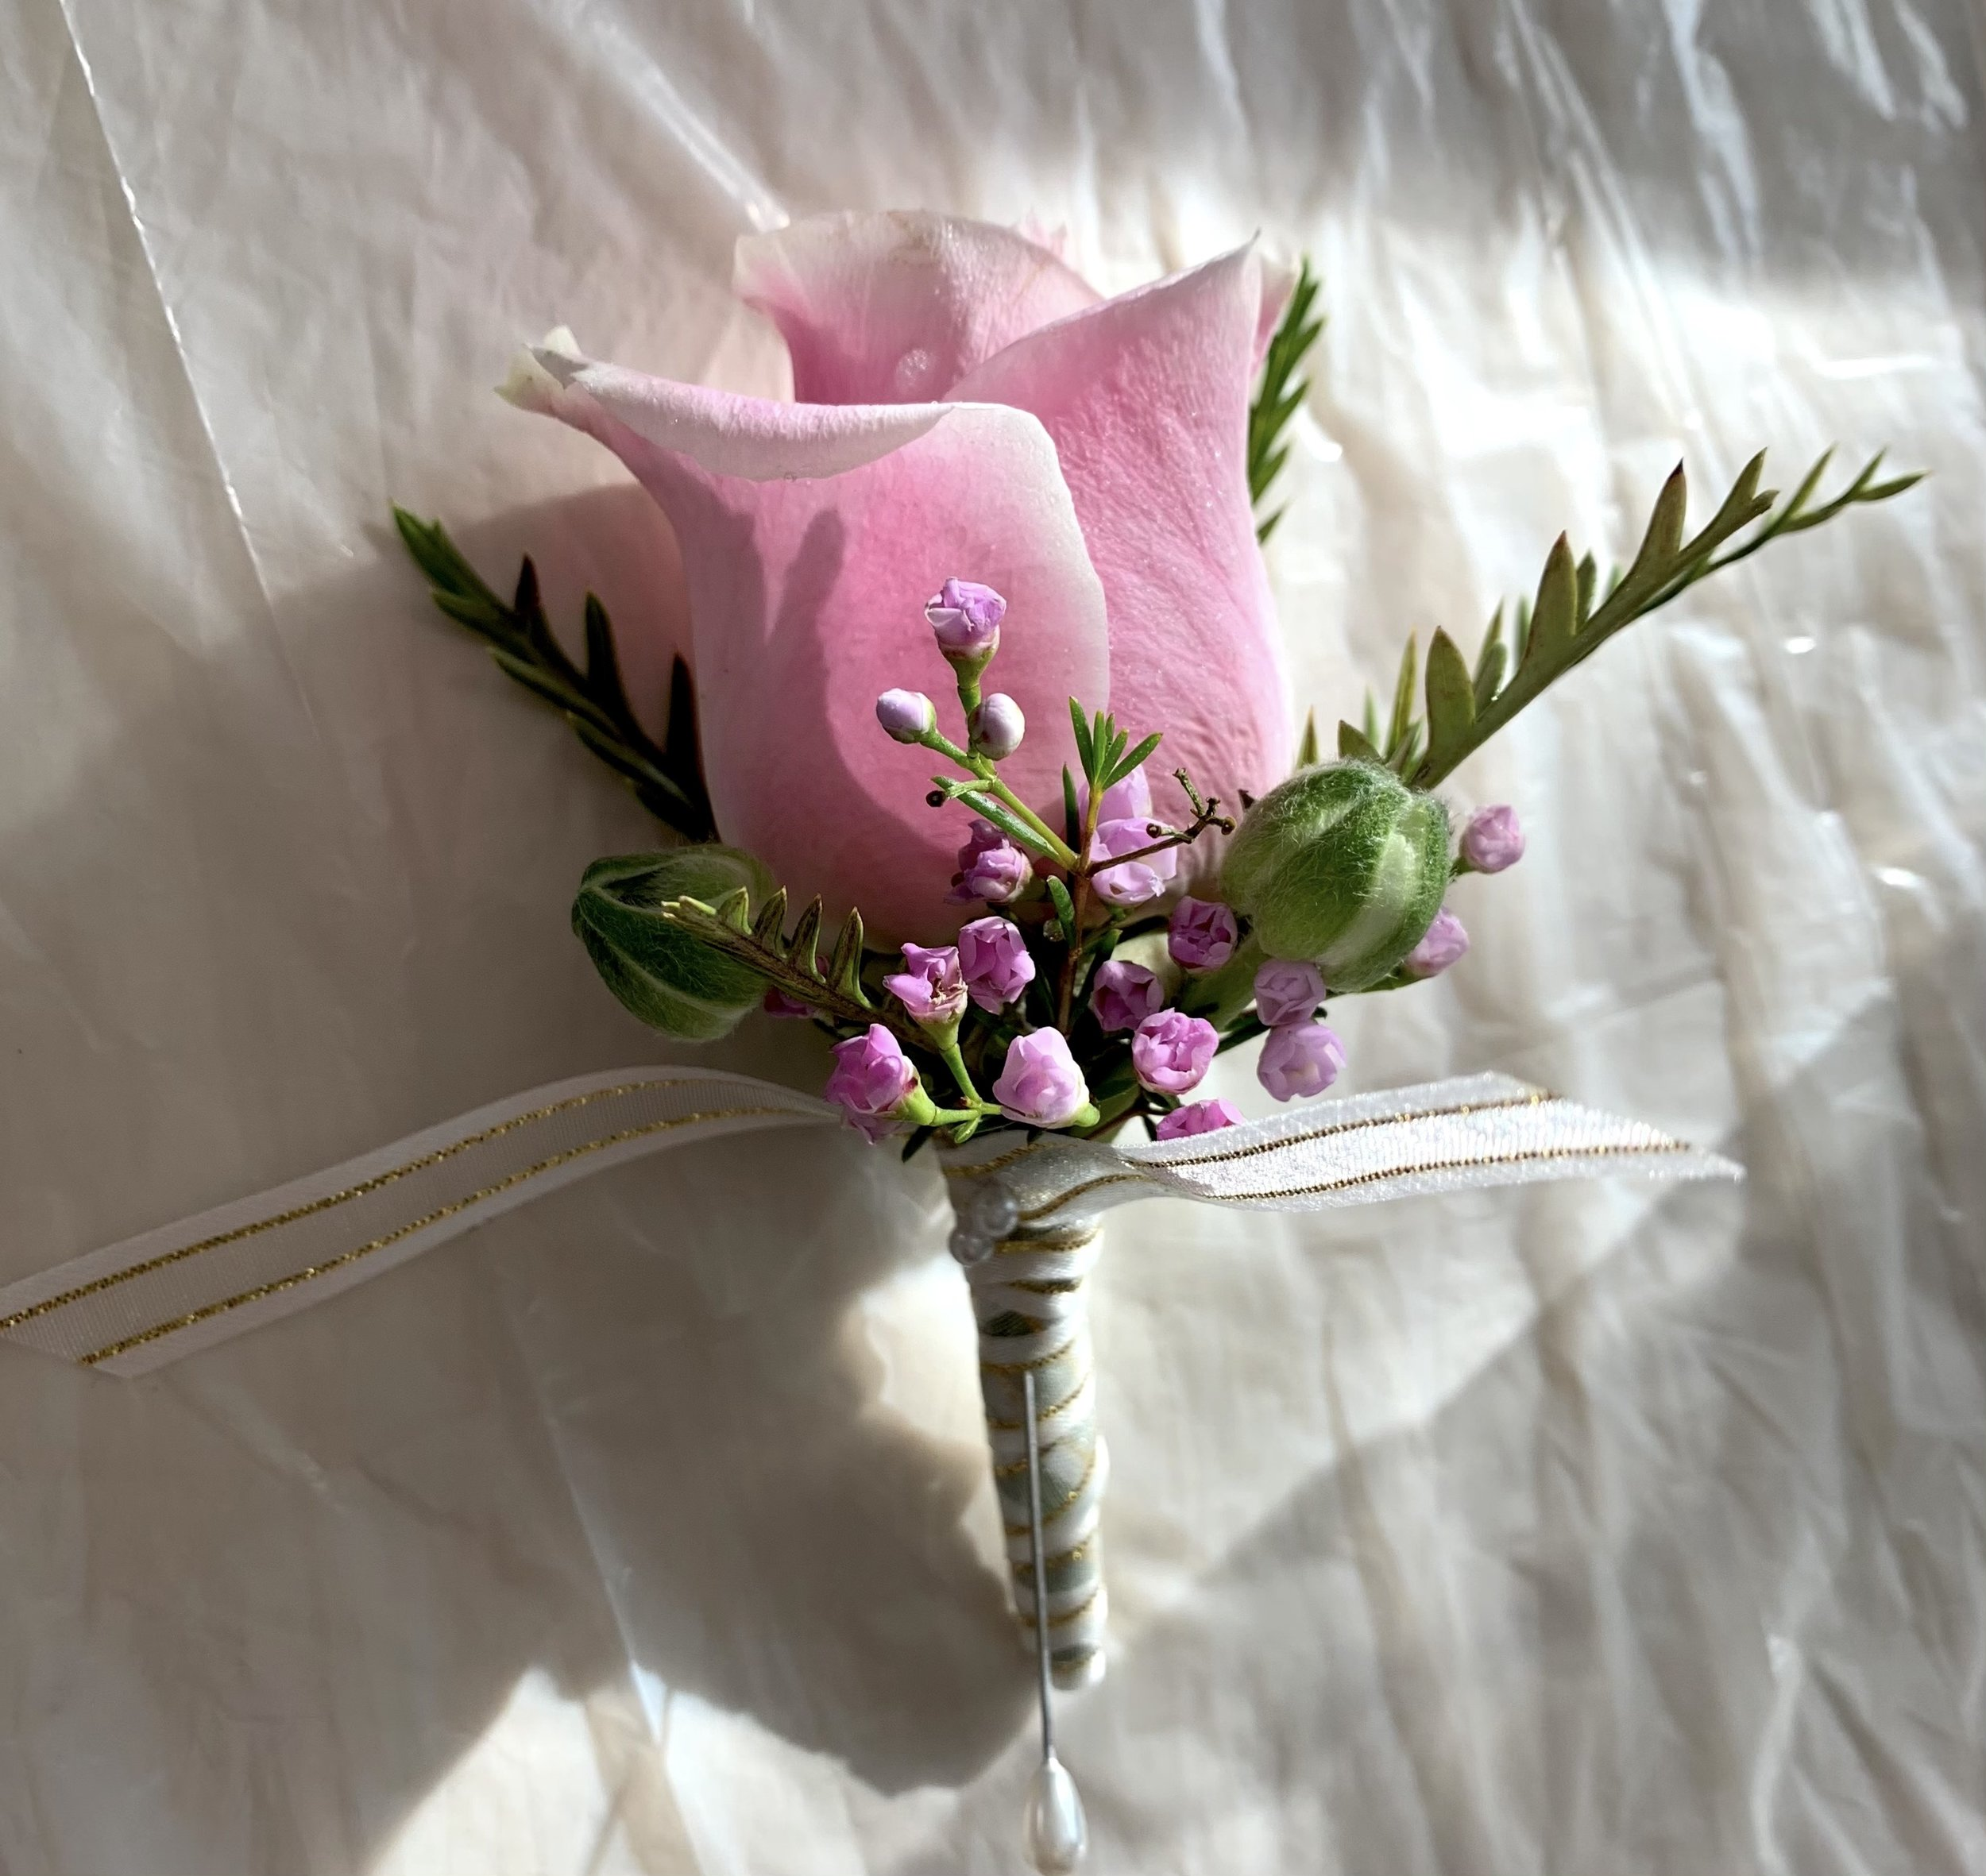 - Sometimes smaller flowers lend themselves well to a simple boutonniere. We wanted to keep this one understated and sophisticated.